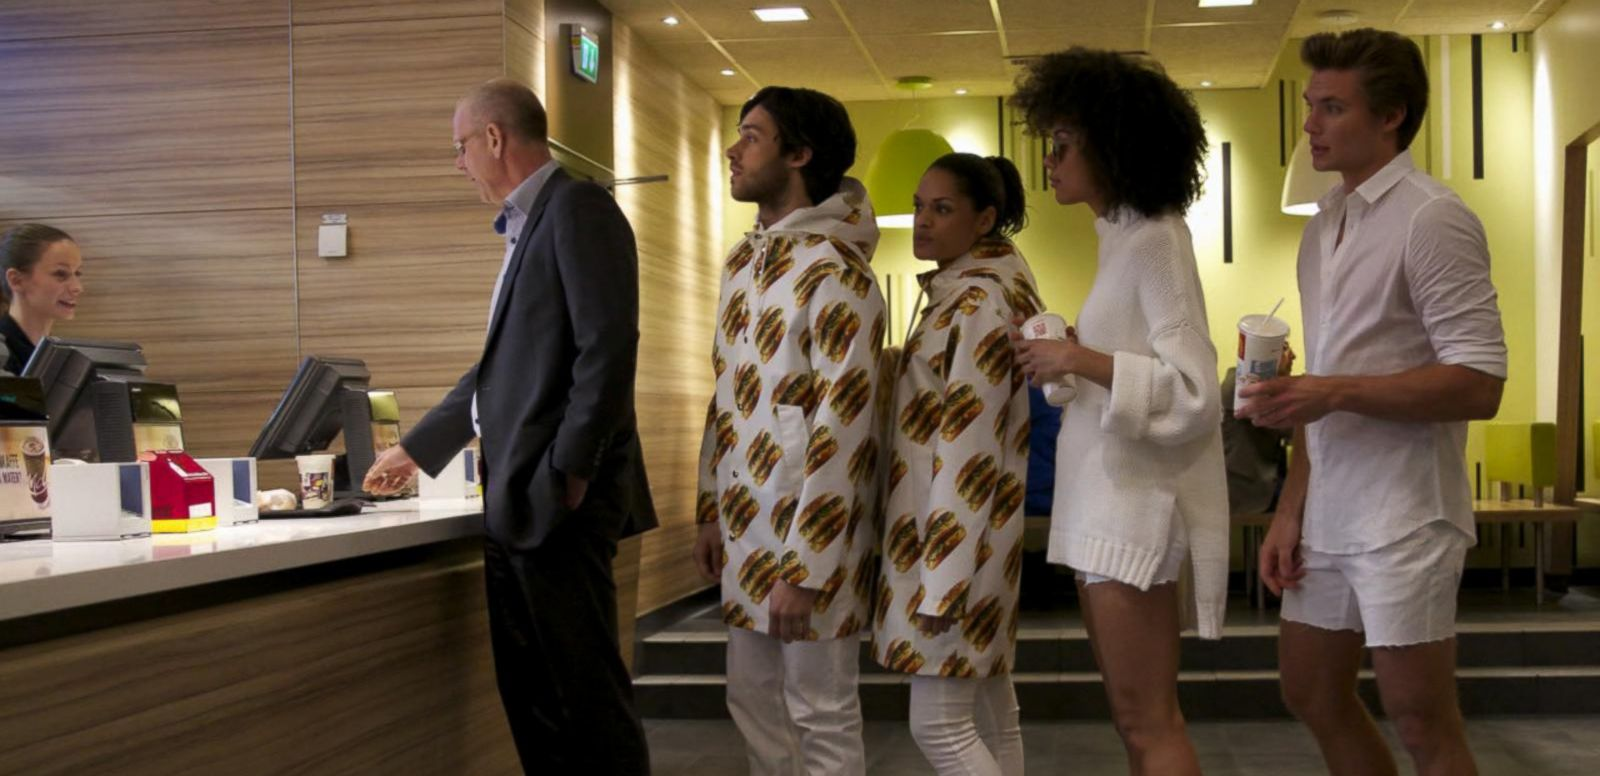 McDonald's McFashion: Introducing Big Mac Clothing Line